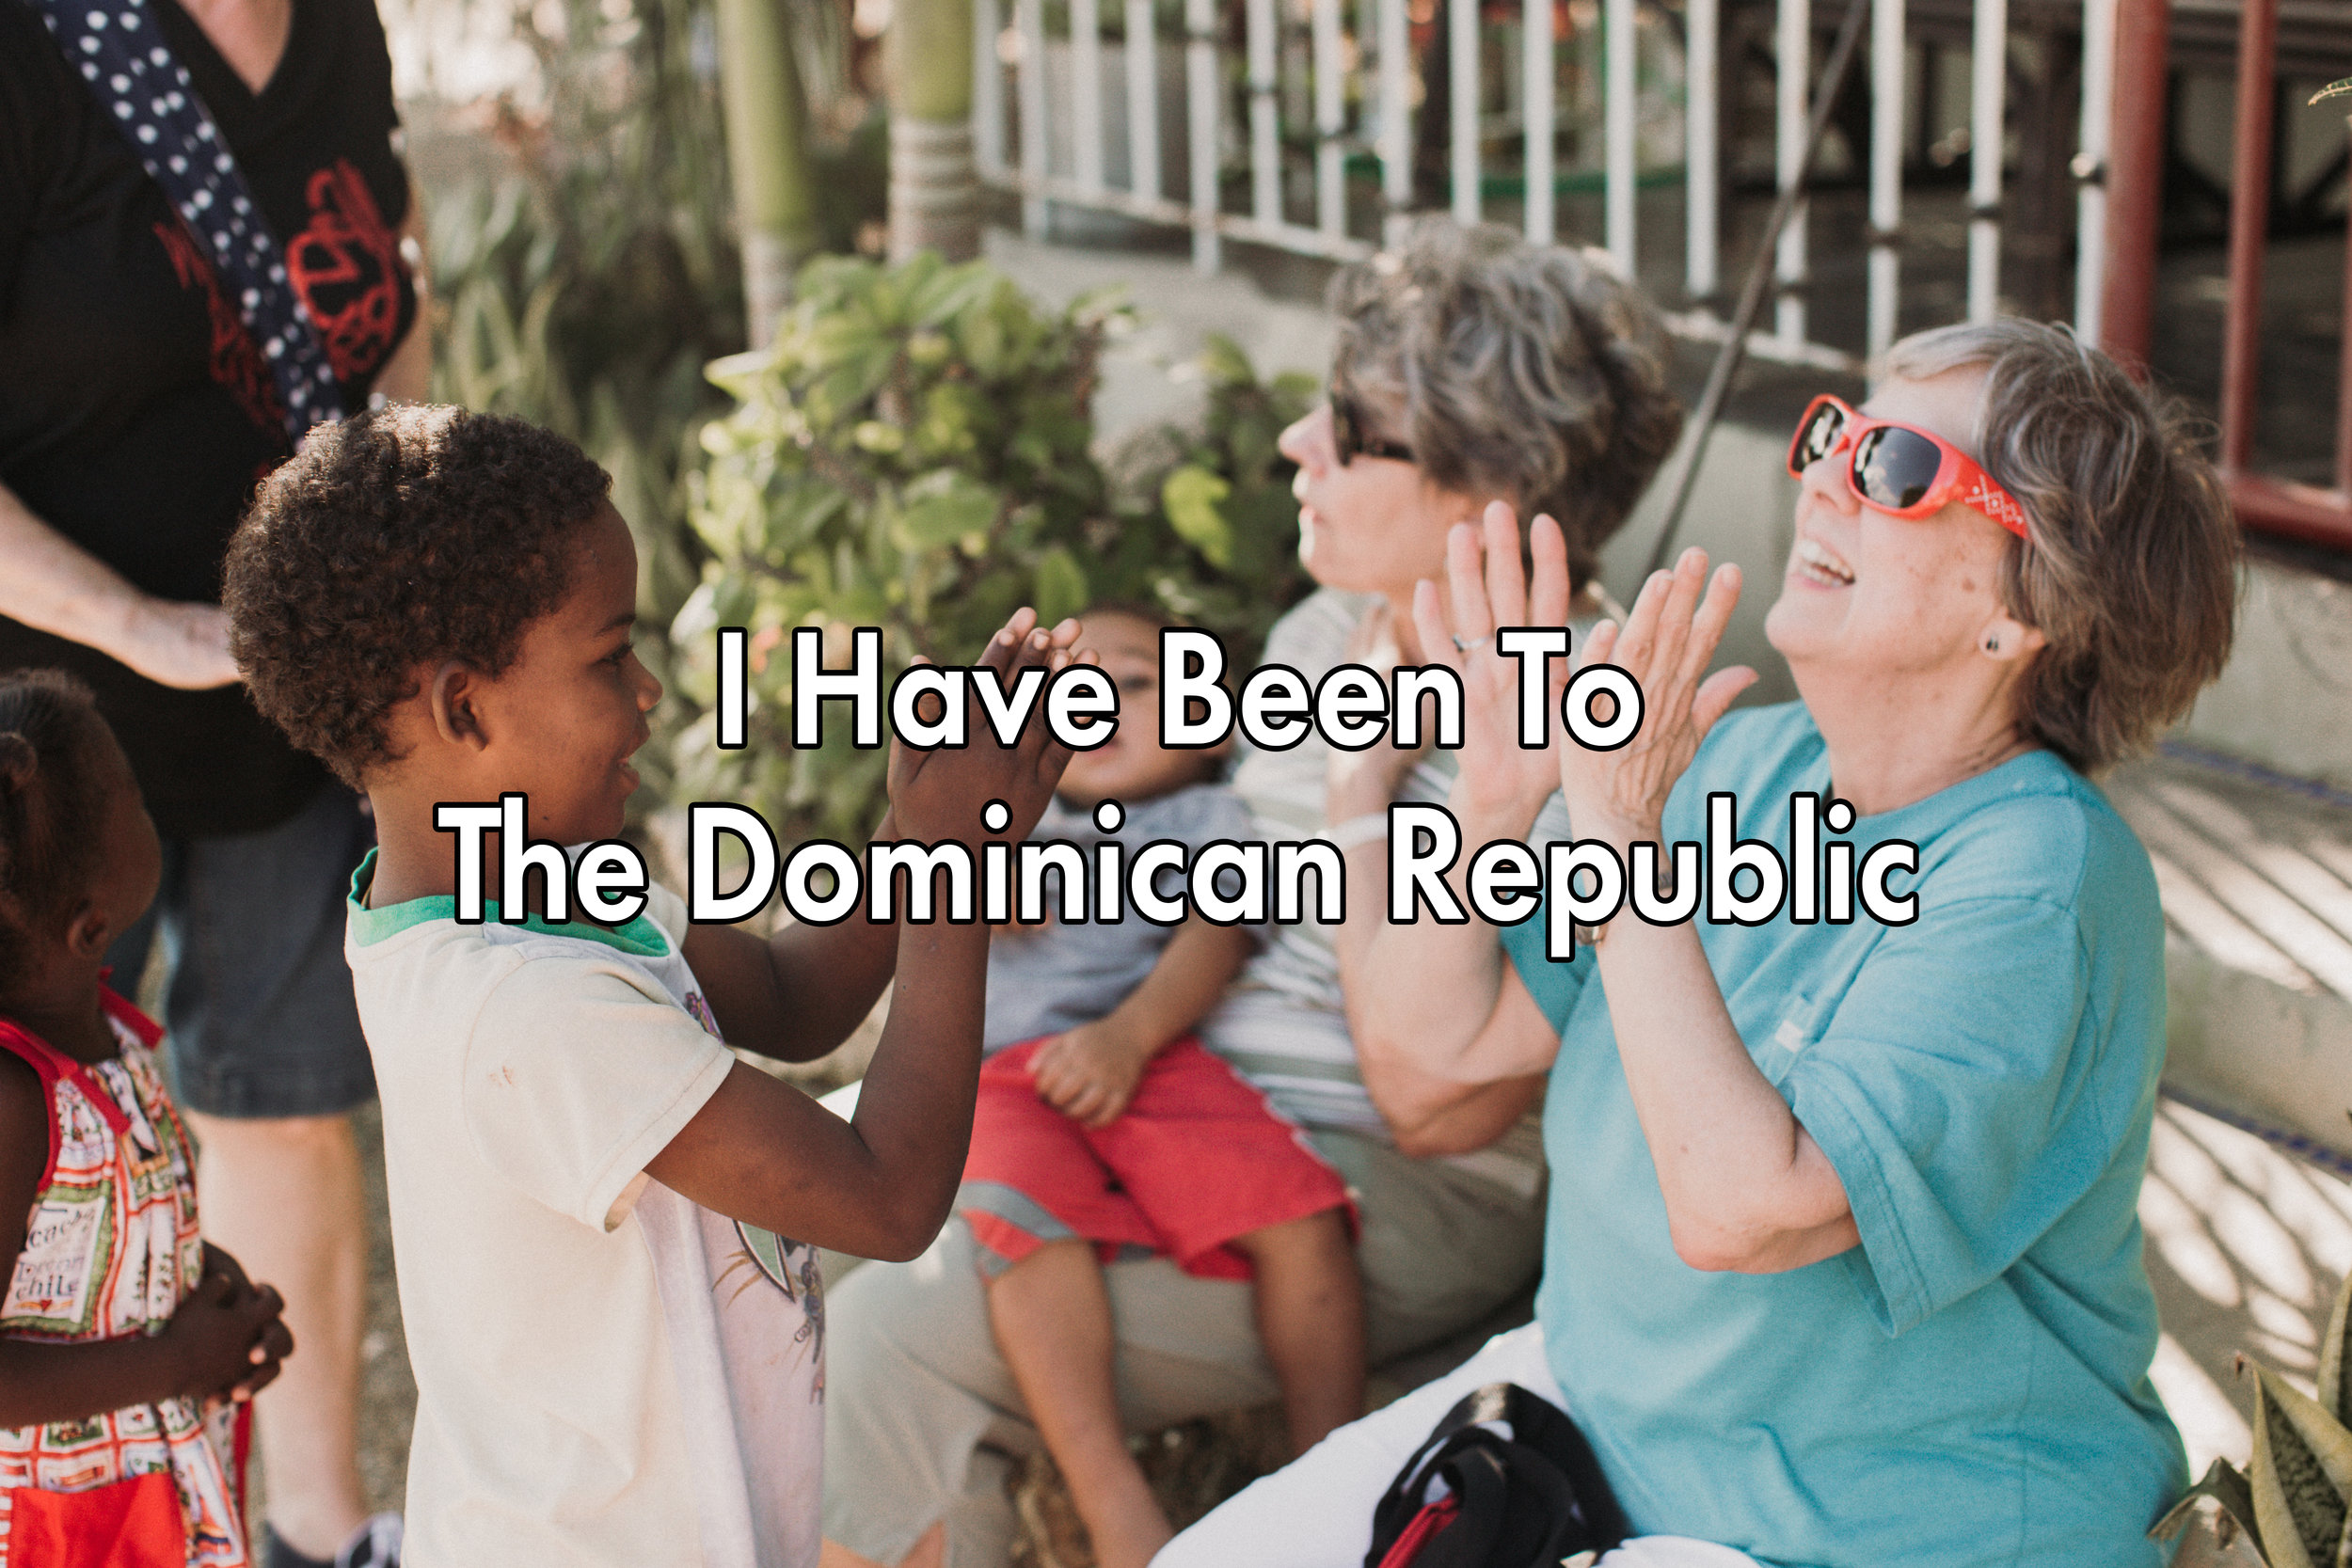 been to the dominican republic.jpg